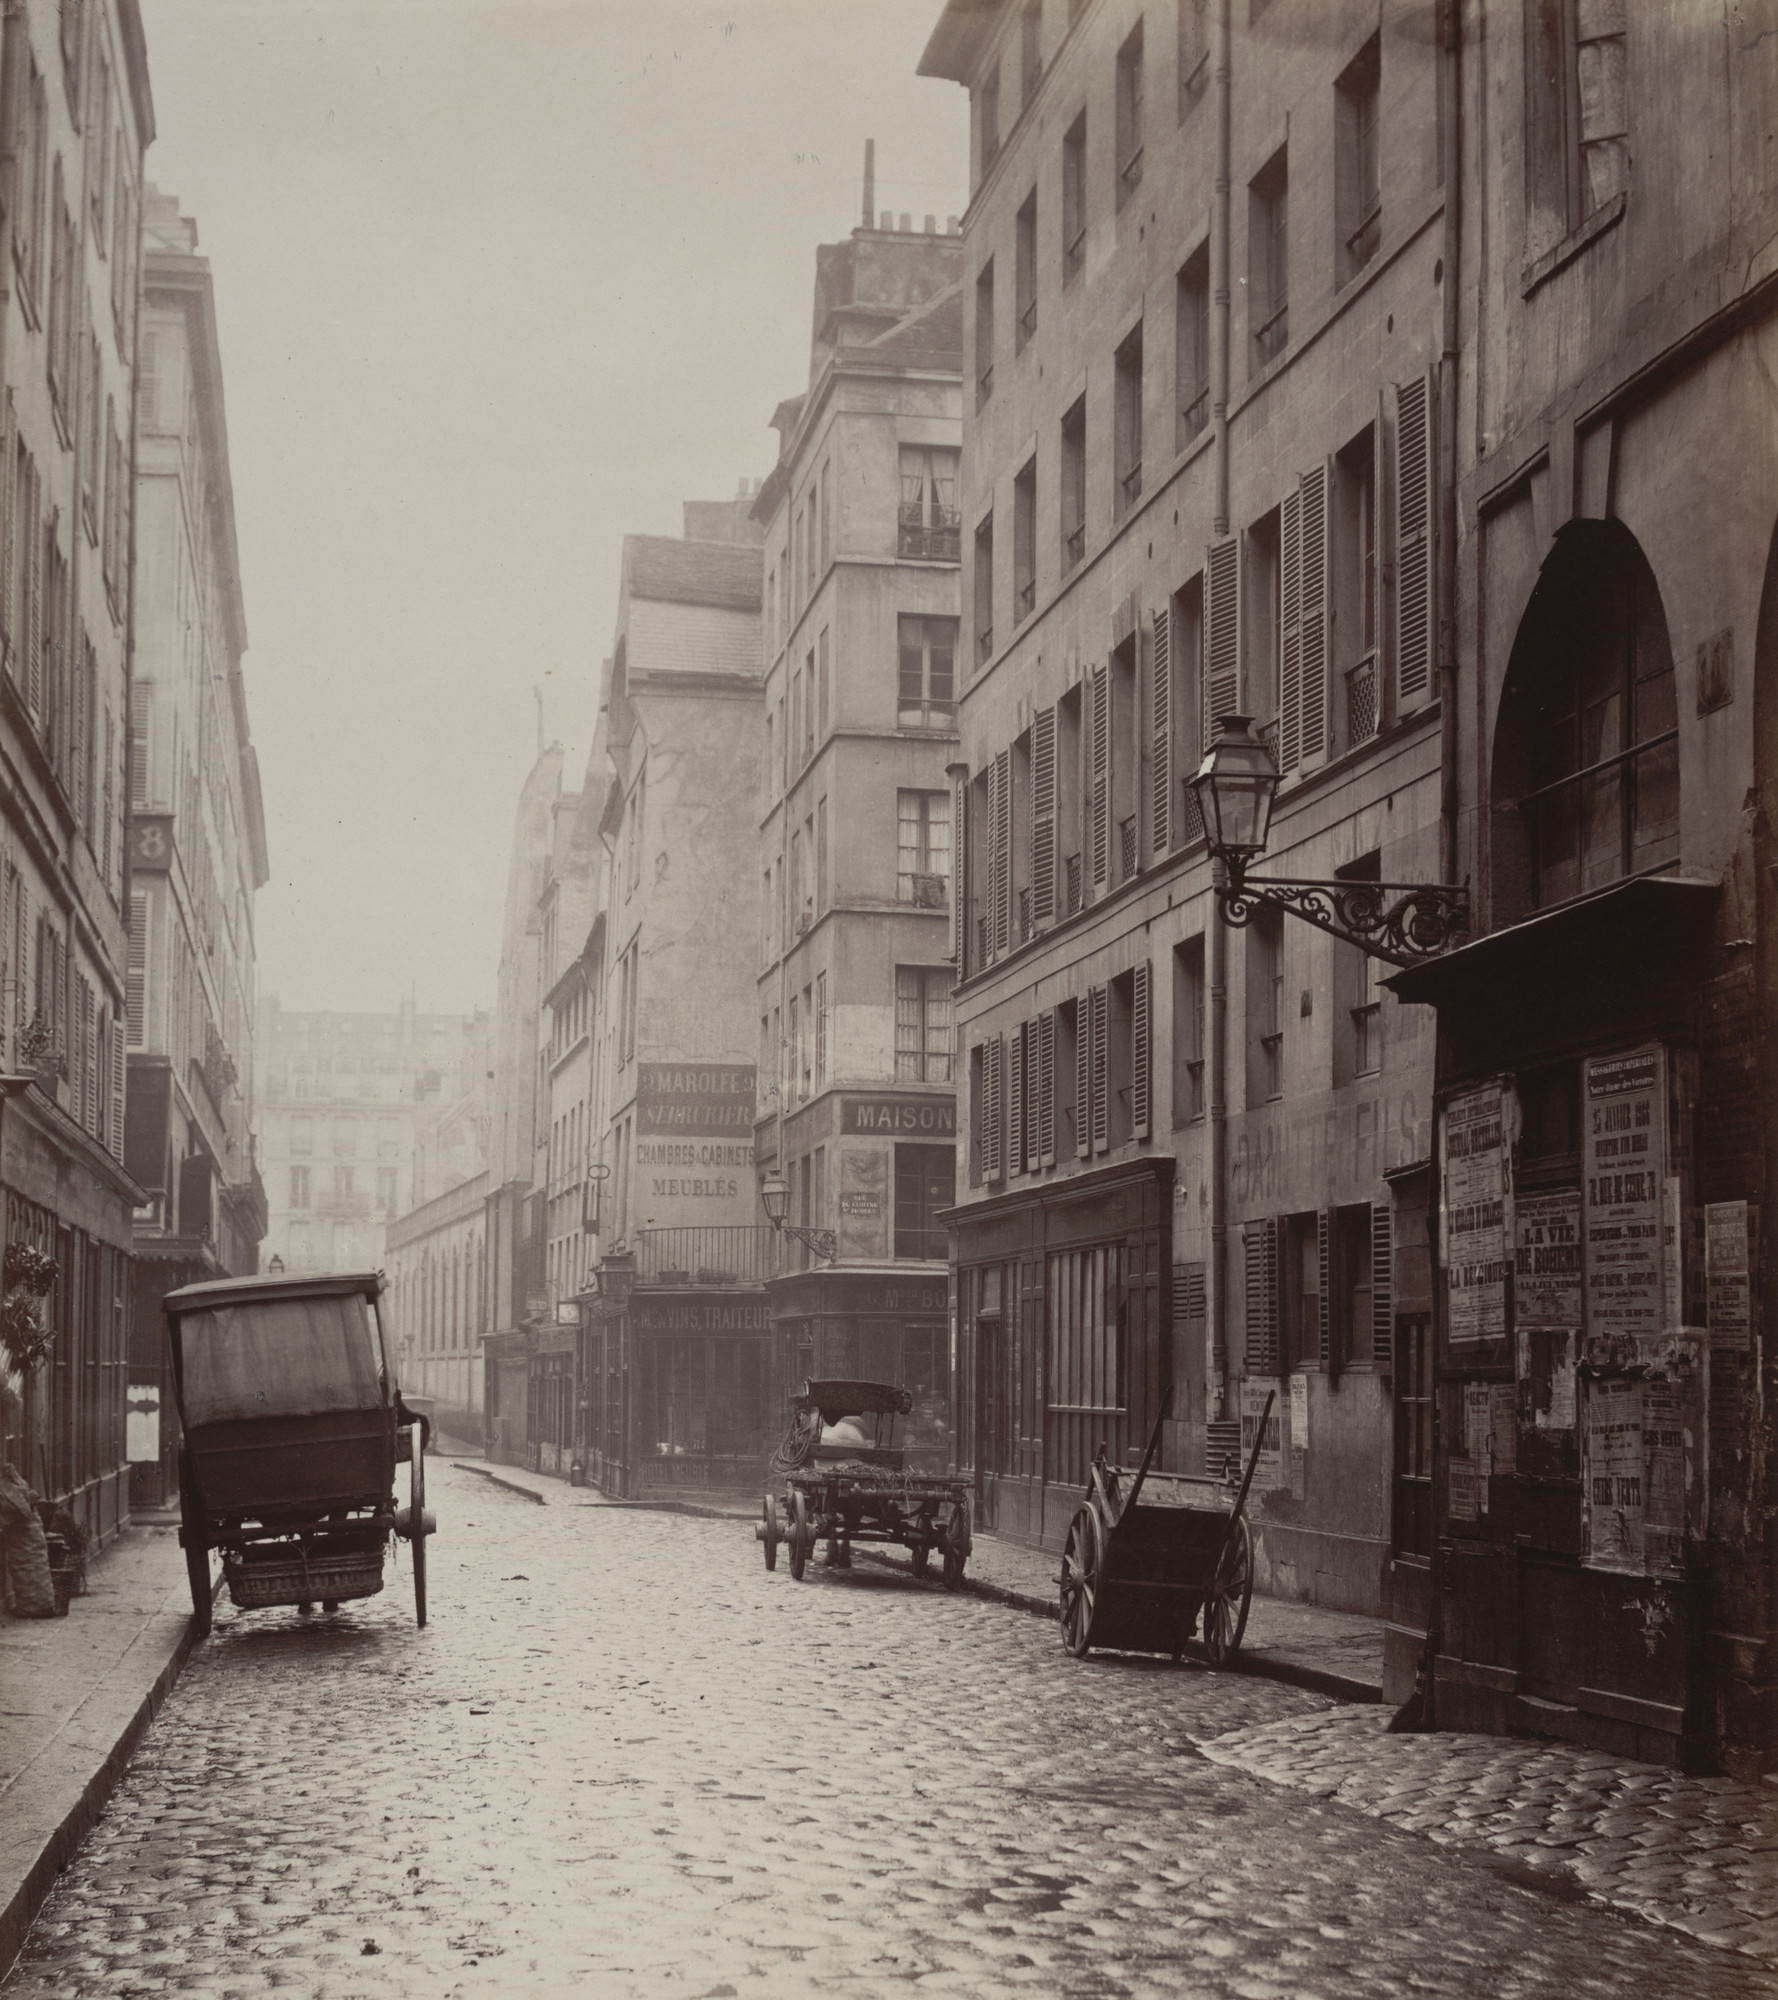 Charles Marville. Rue du Cygne Seen from Rue Mondétour. 1866